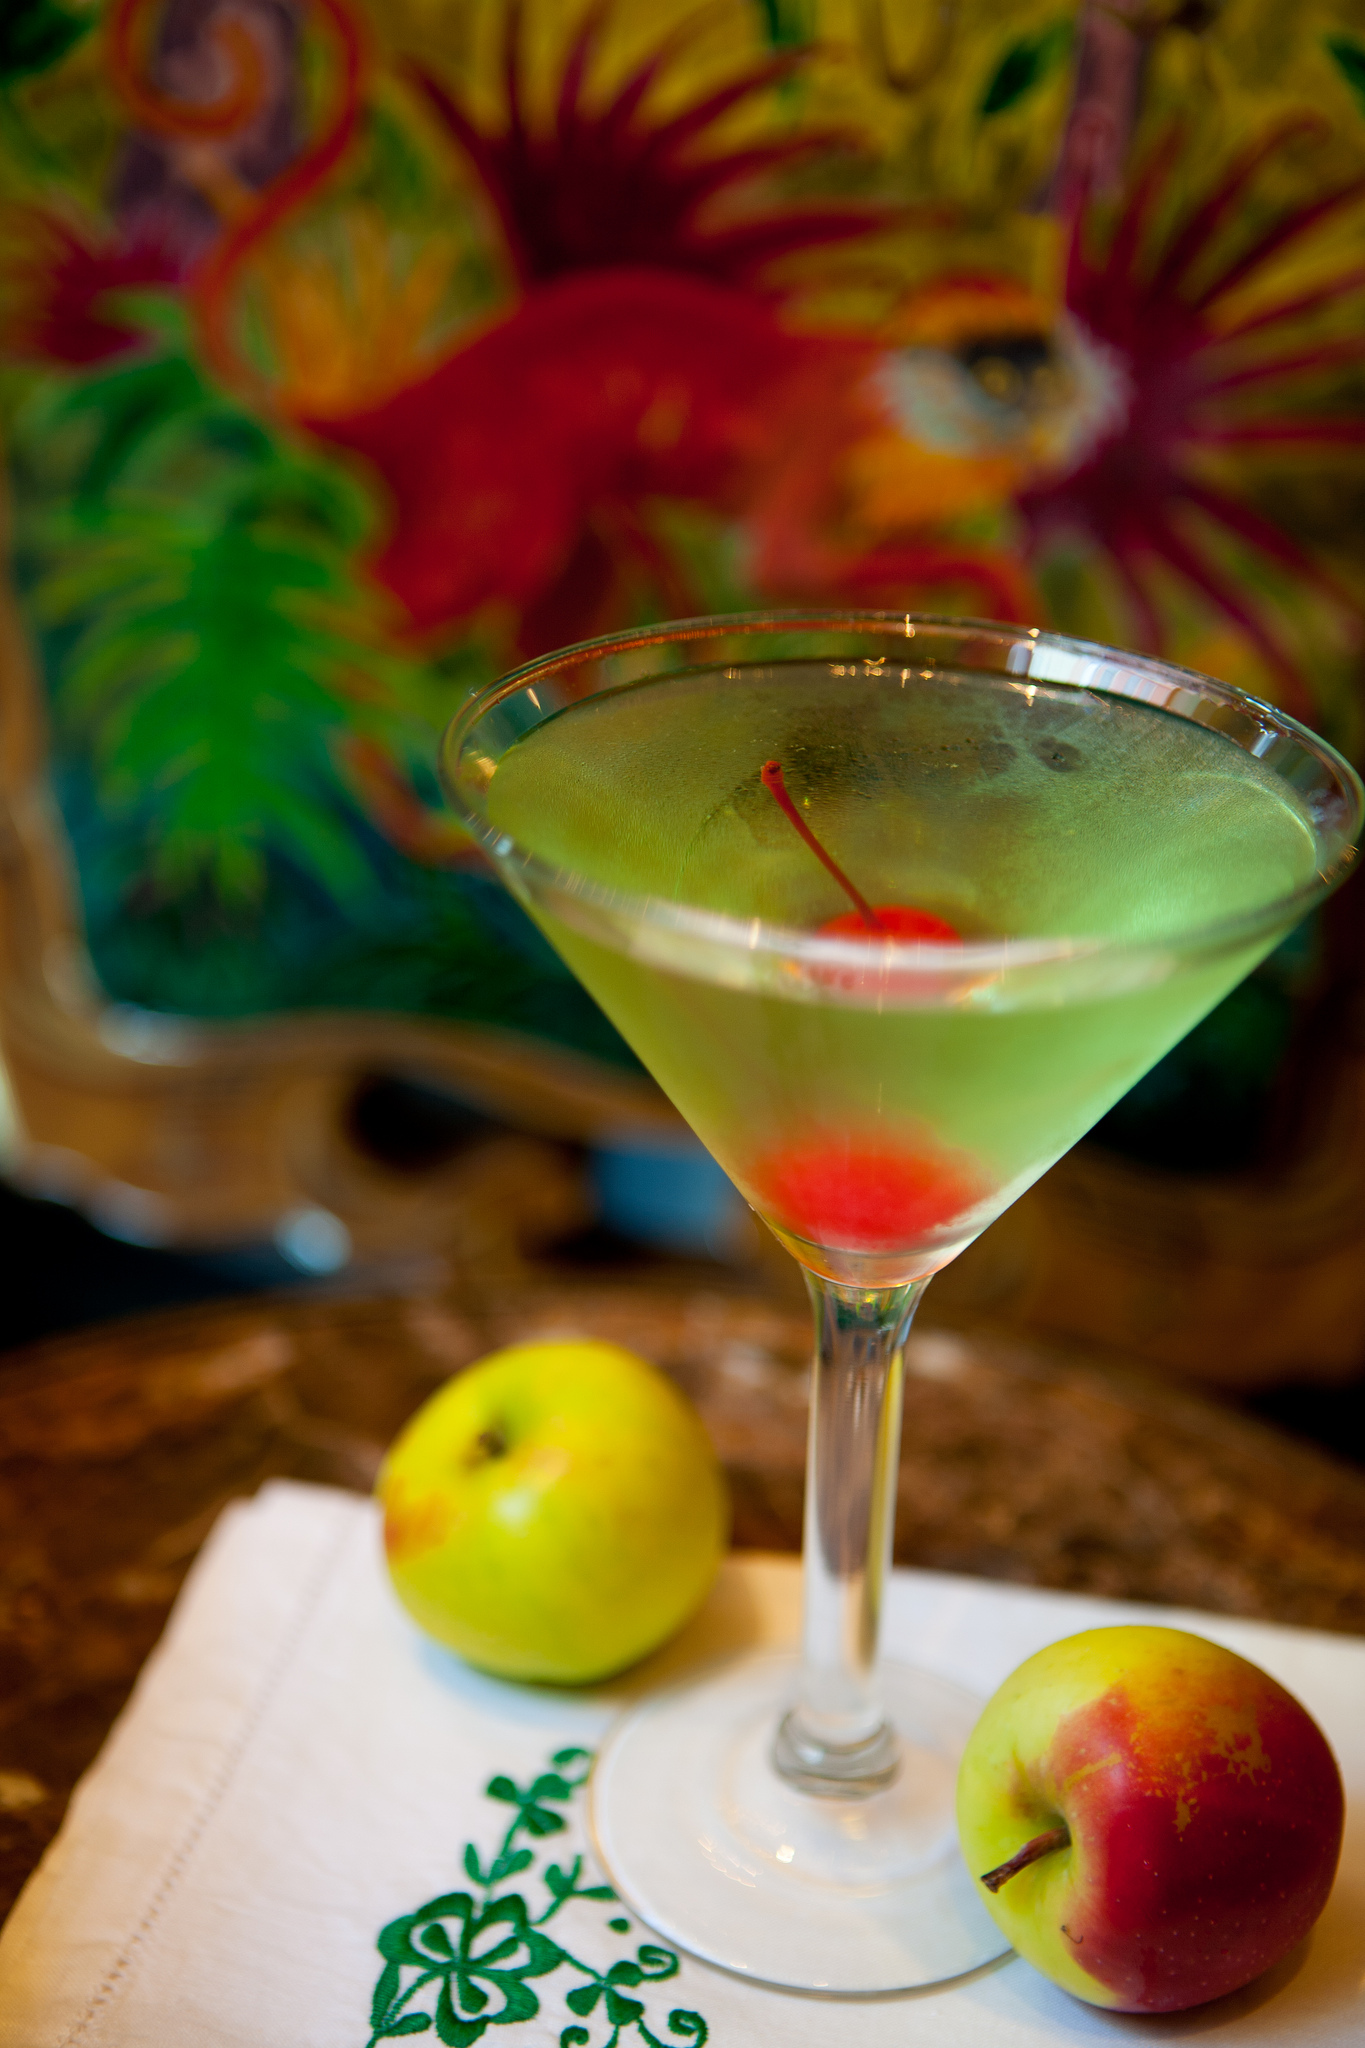 Our take on a sour apple martini, this cocktail from the Carousel Bar is a tart treat you won't want to miss!